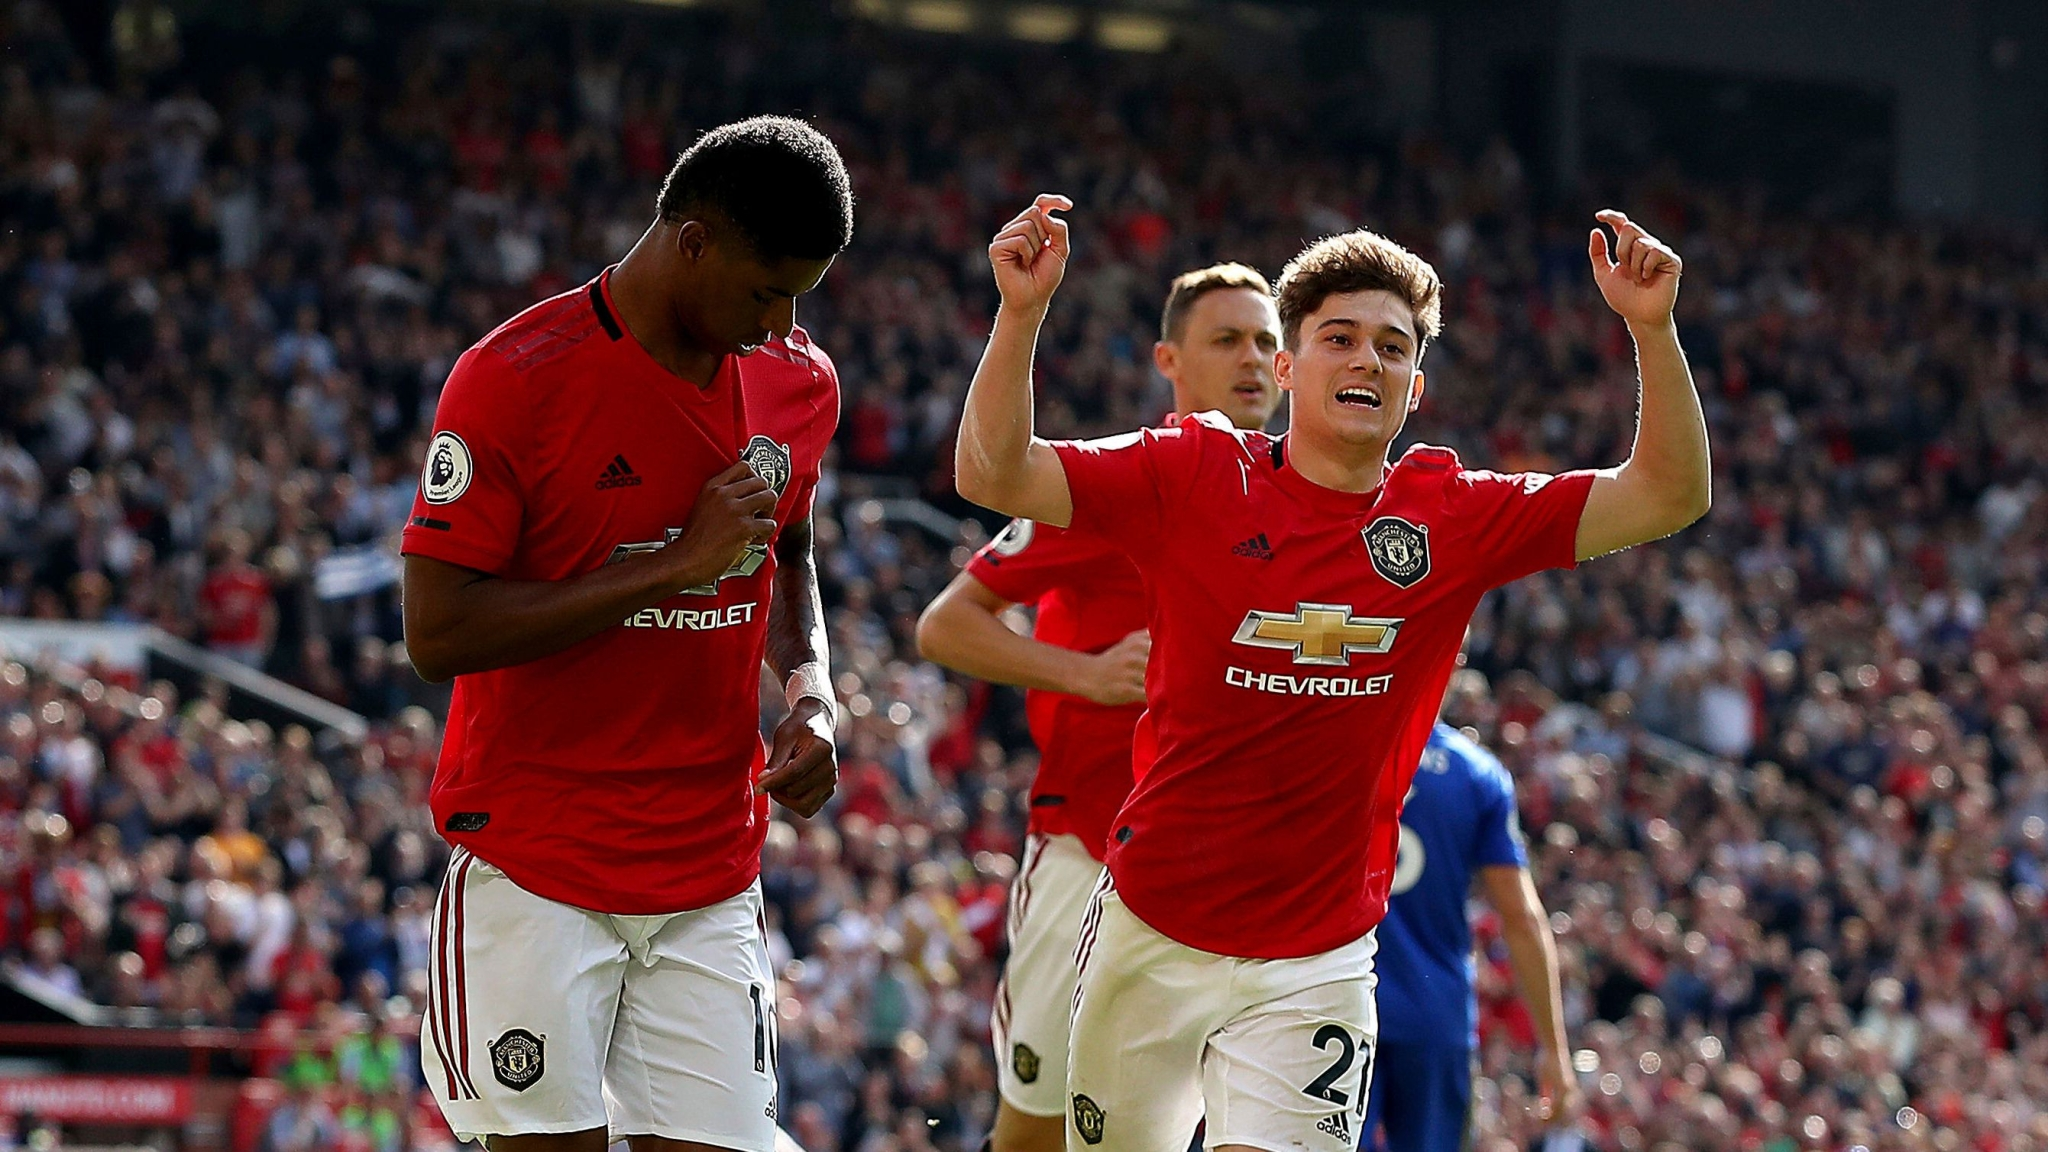 Man United Beat Leicester on Penalty to End Wait for a Win